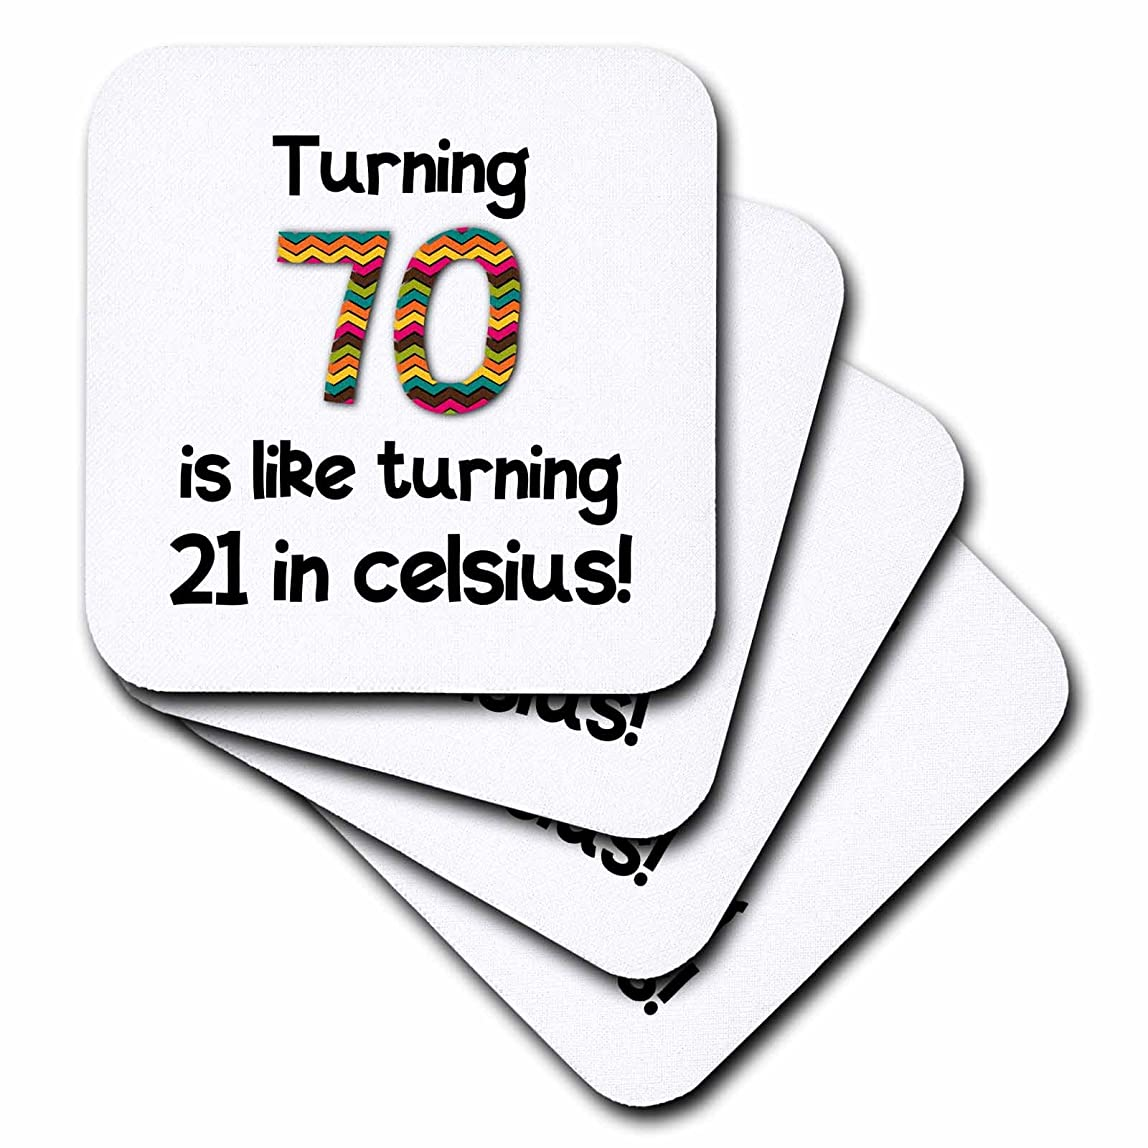 3dRose CST_184965_3 Turning 70 is Like Turning 21 in Celsius Humorous 70th Birthday Gift Ceramic Tile Coaster (Set of 4) dkkbijw413474